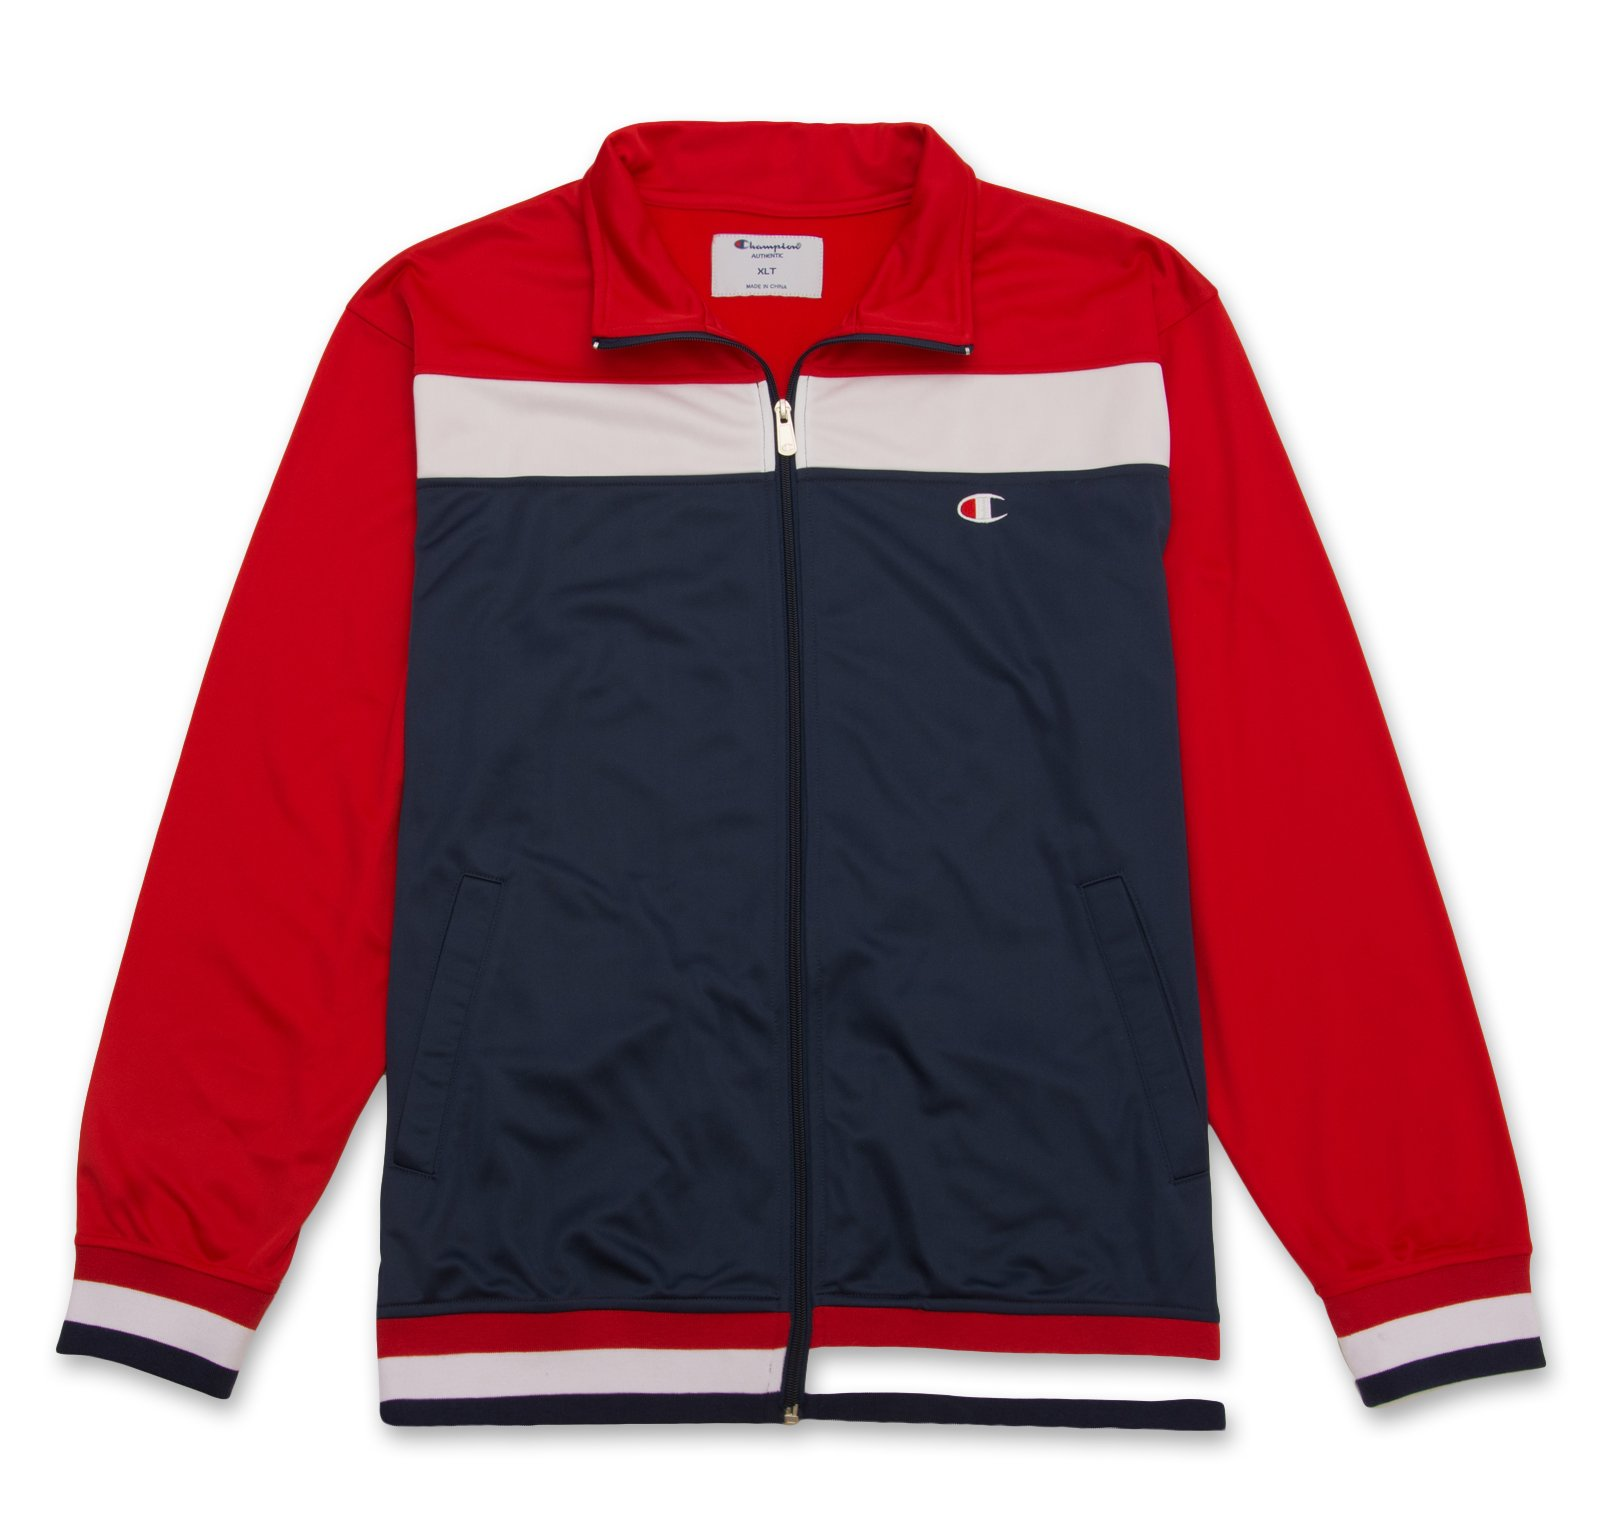 Champion Men's Long Sleeve Tricot Track Jacket Zipper Pockets Athletic Exercise Striped Navy/Red/White 4XT